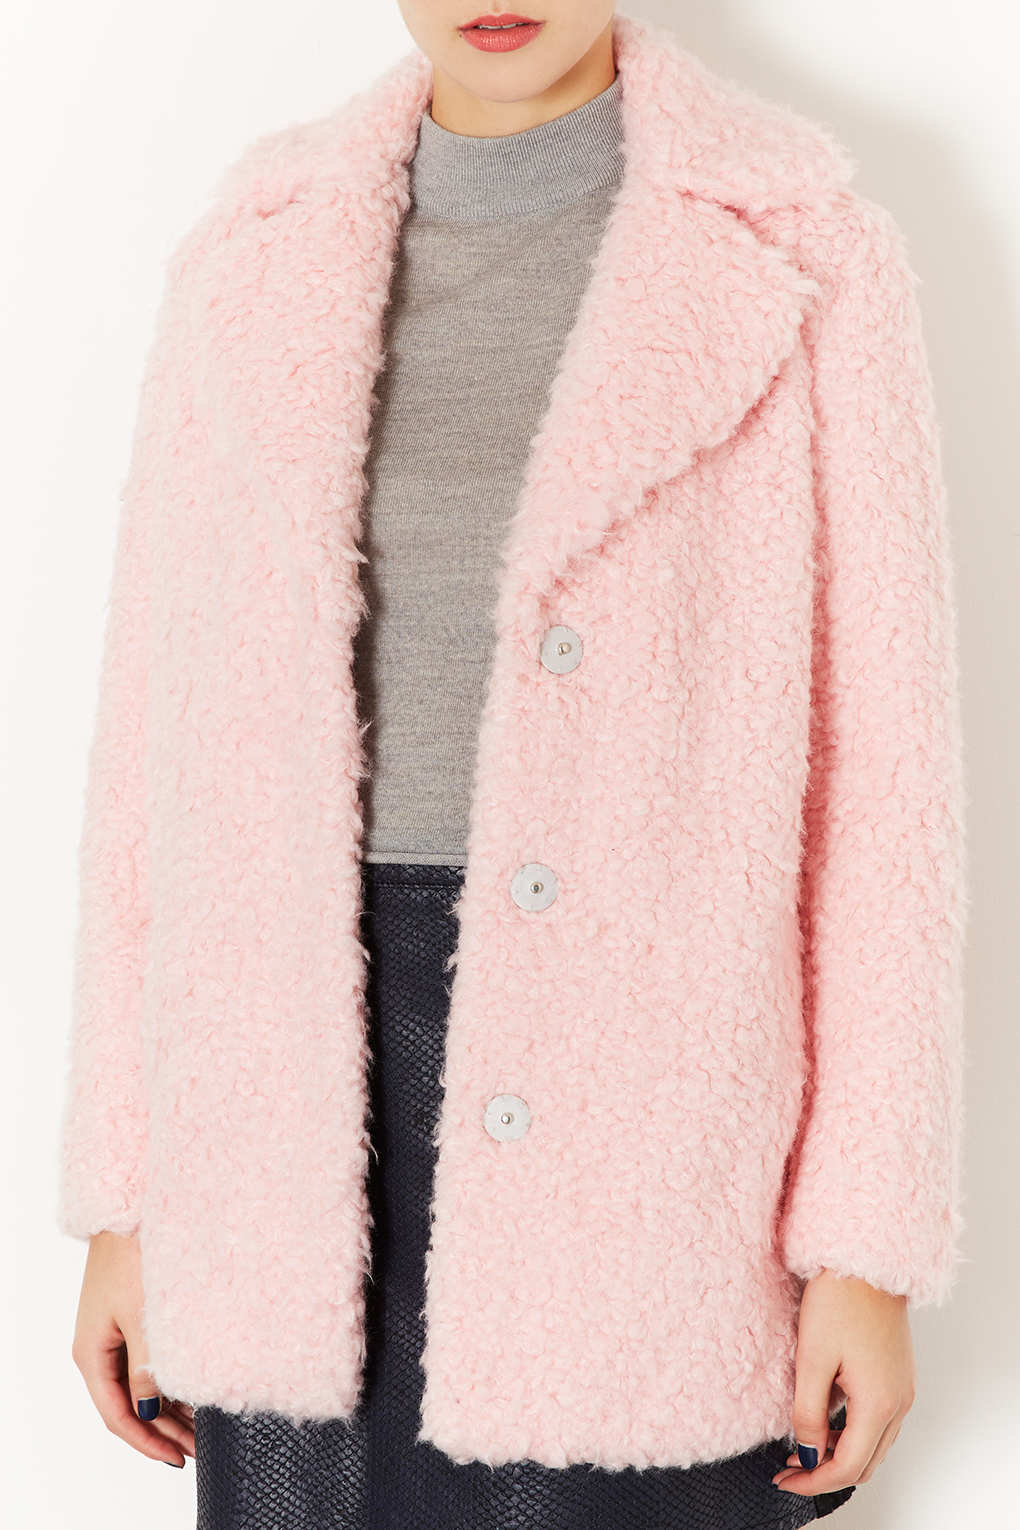 Free shipping and returns on Women's Pink Wool & Wool-Blend Coats at appzdnatw.cf